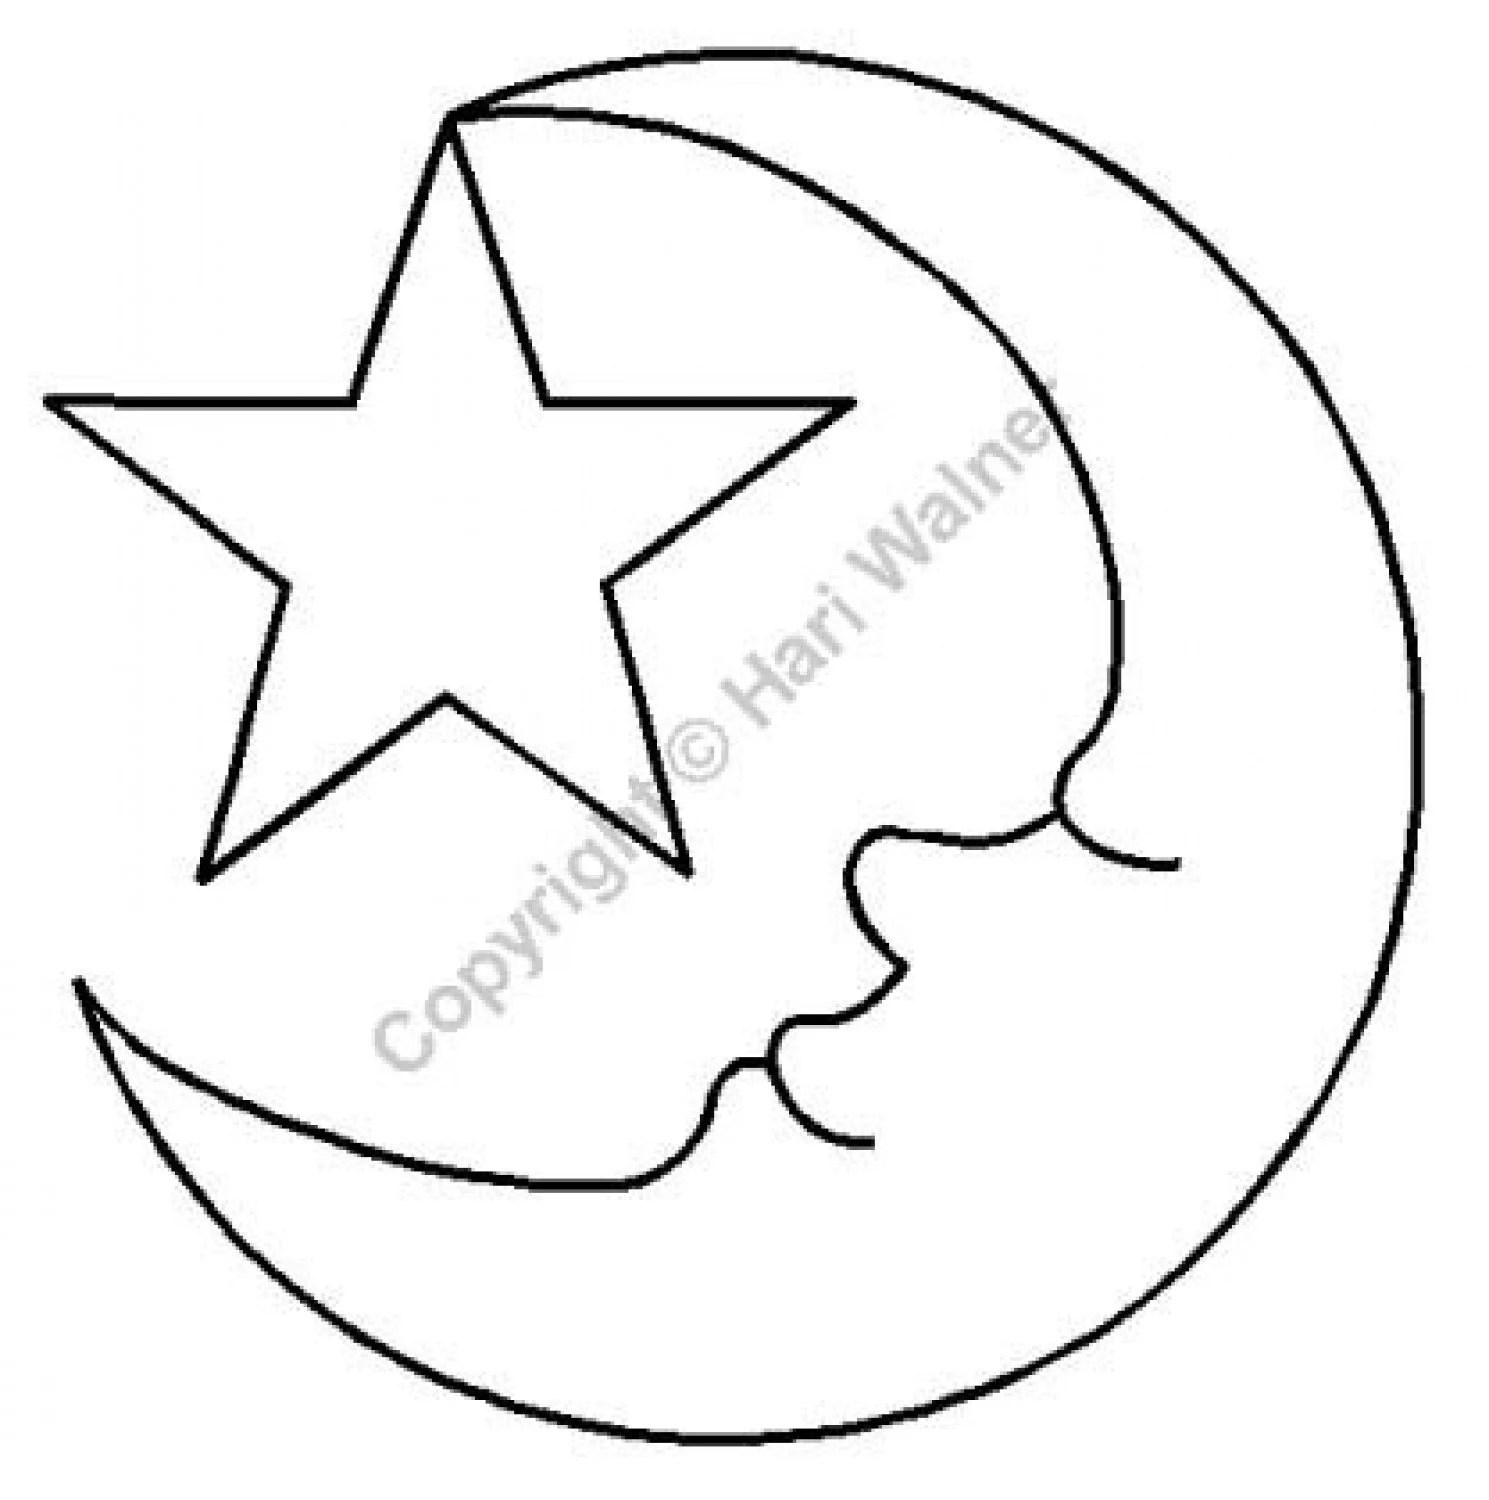 NOTION Stencil Template: MOON and STAR Applique